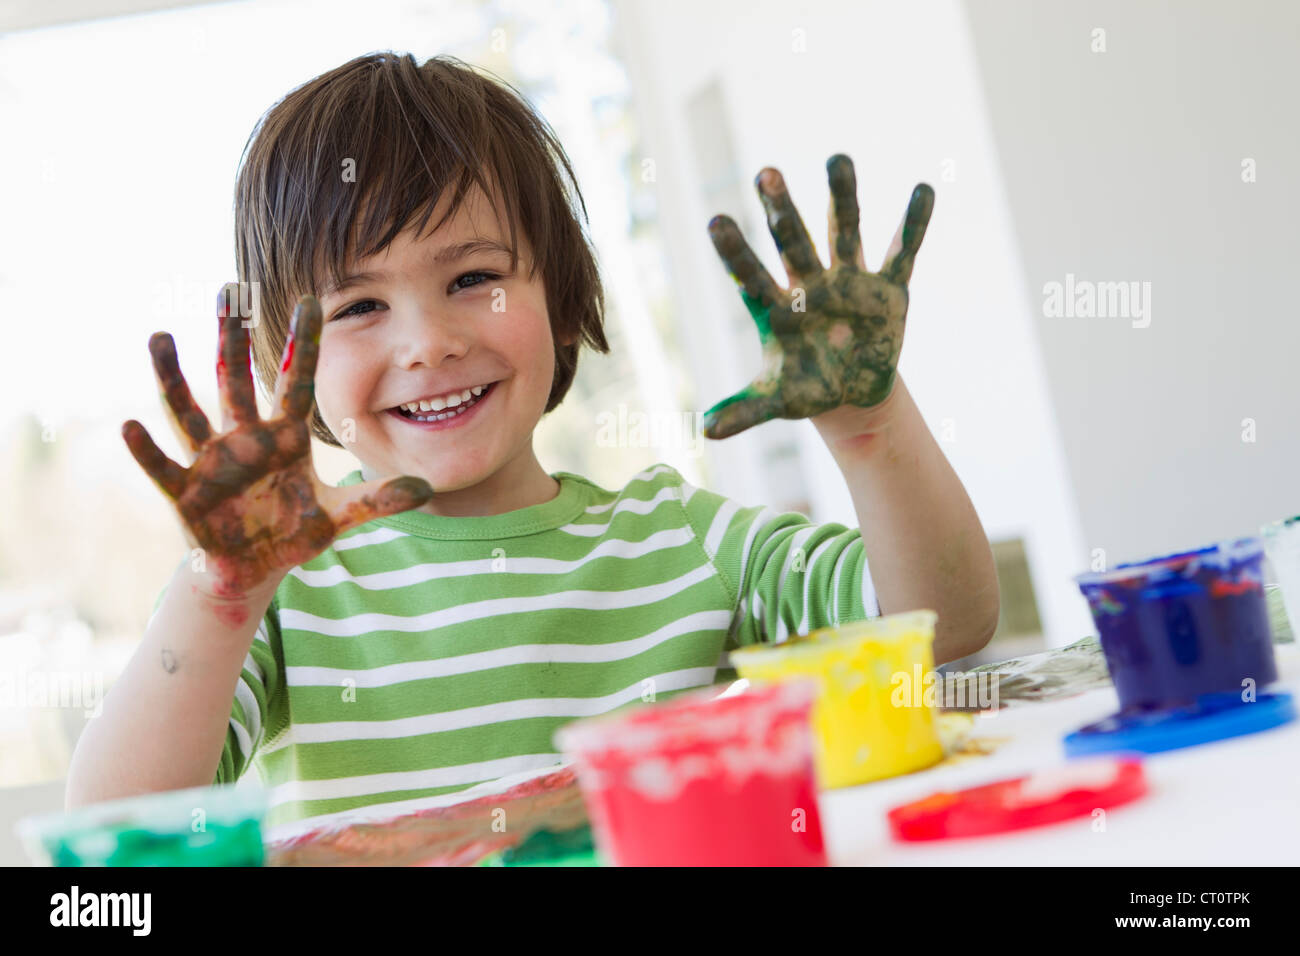 Smiling boy finger painting indoors Stock Photo